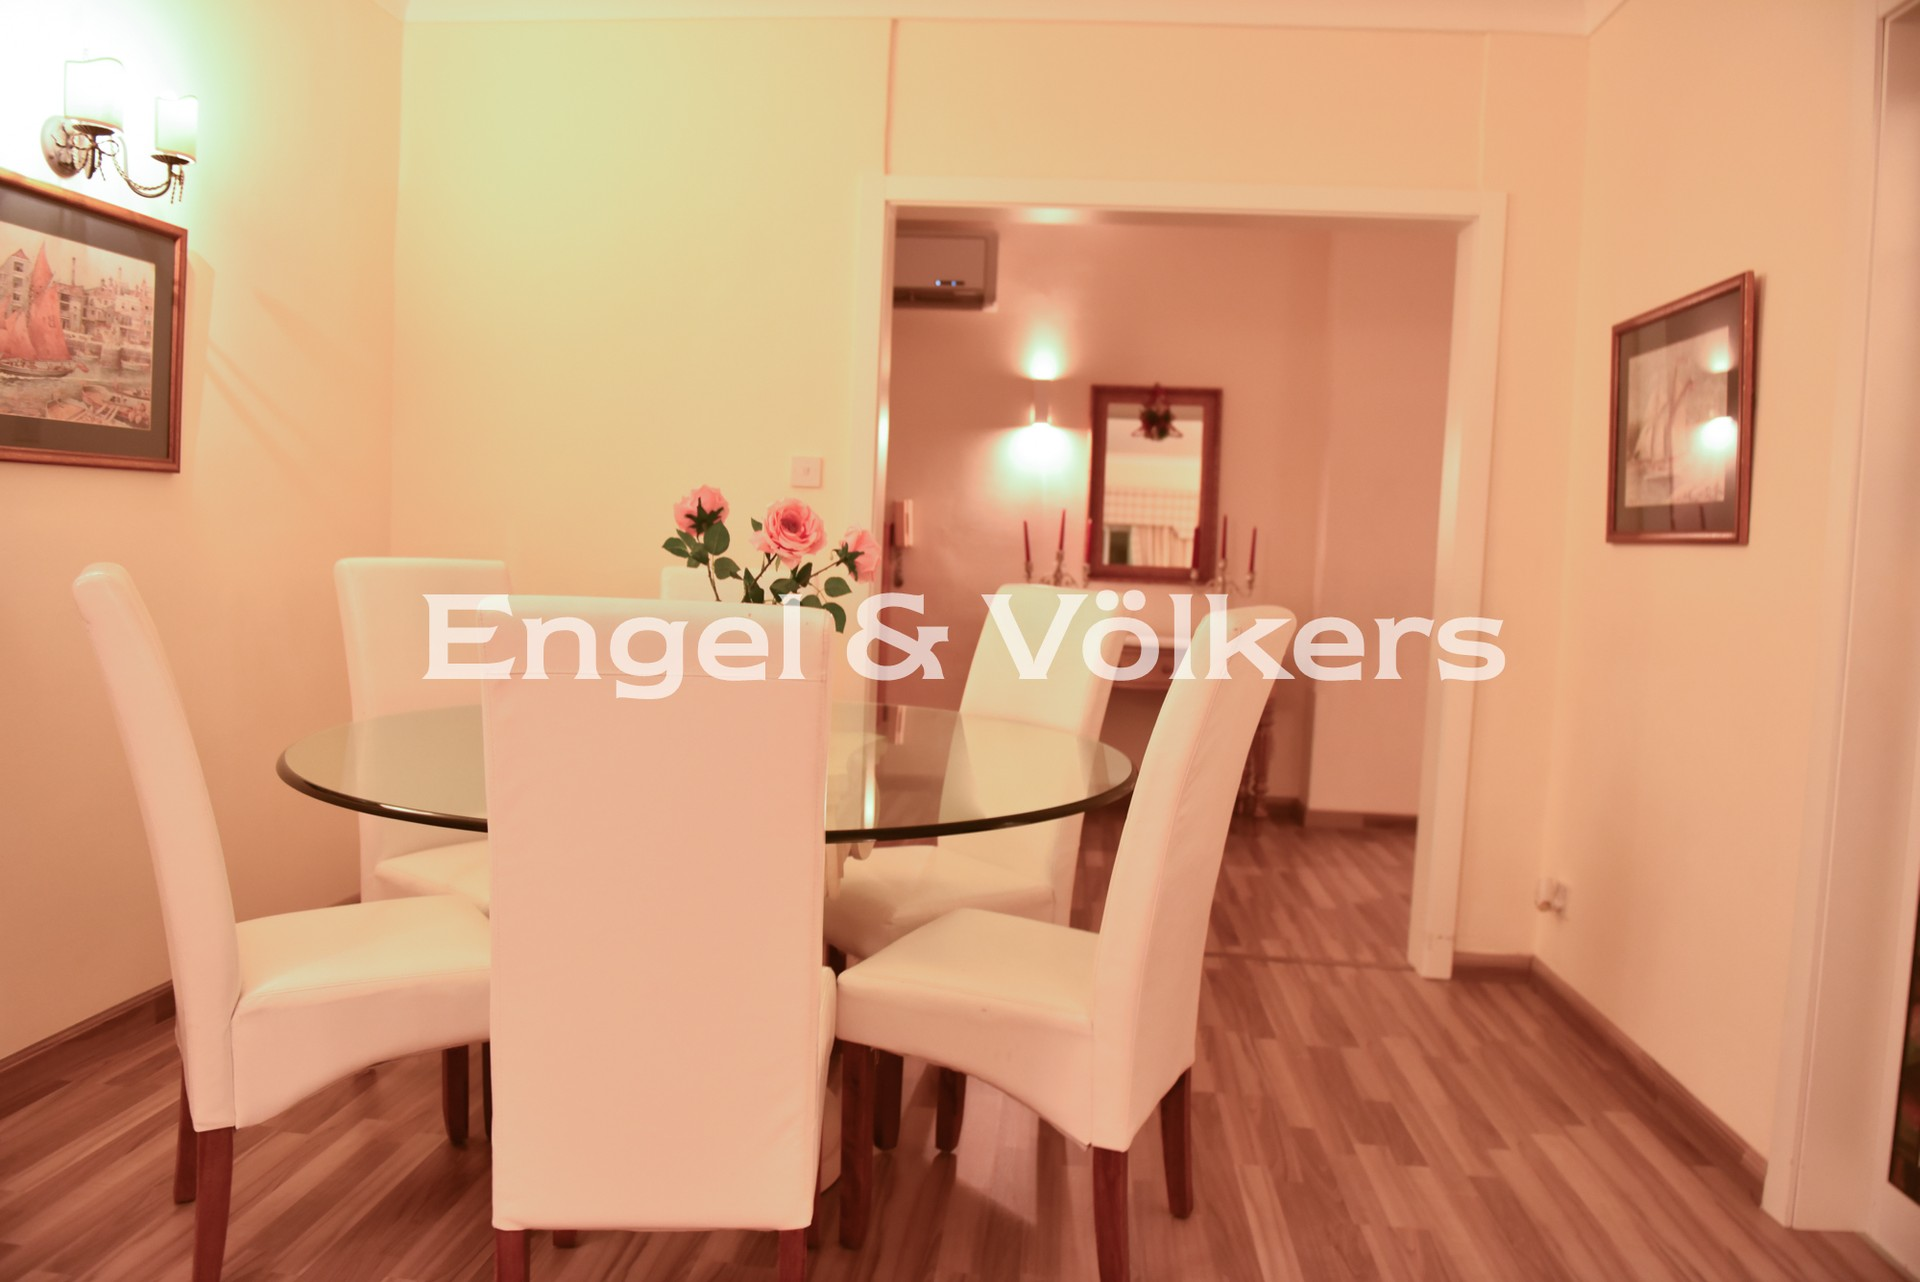 Apartment in Paceville - Apartment, Paceville, Kitchen/Dining/Living